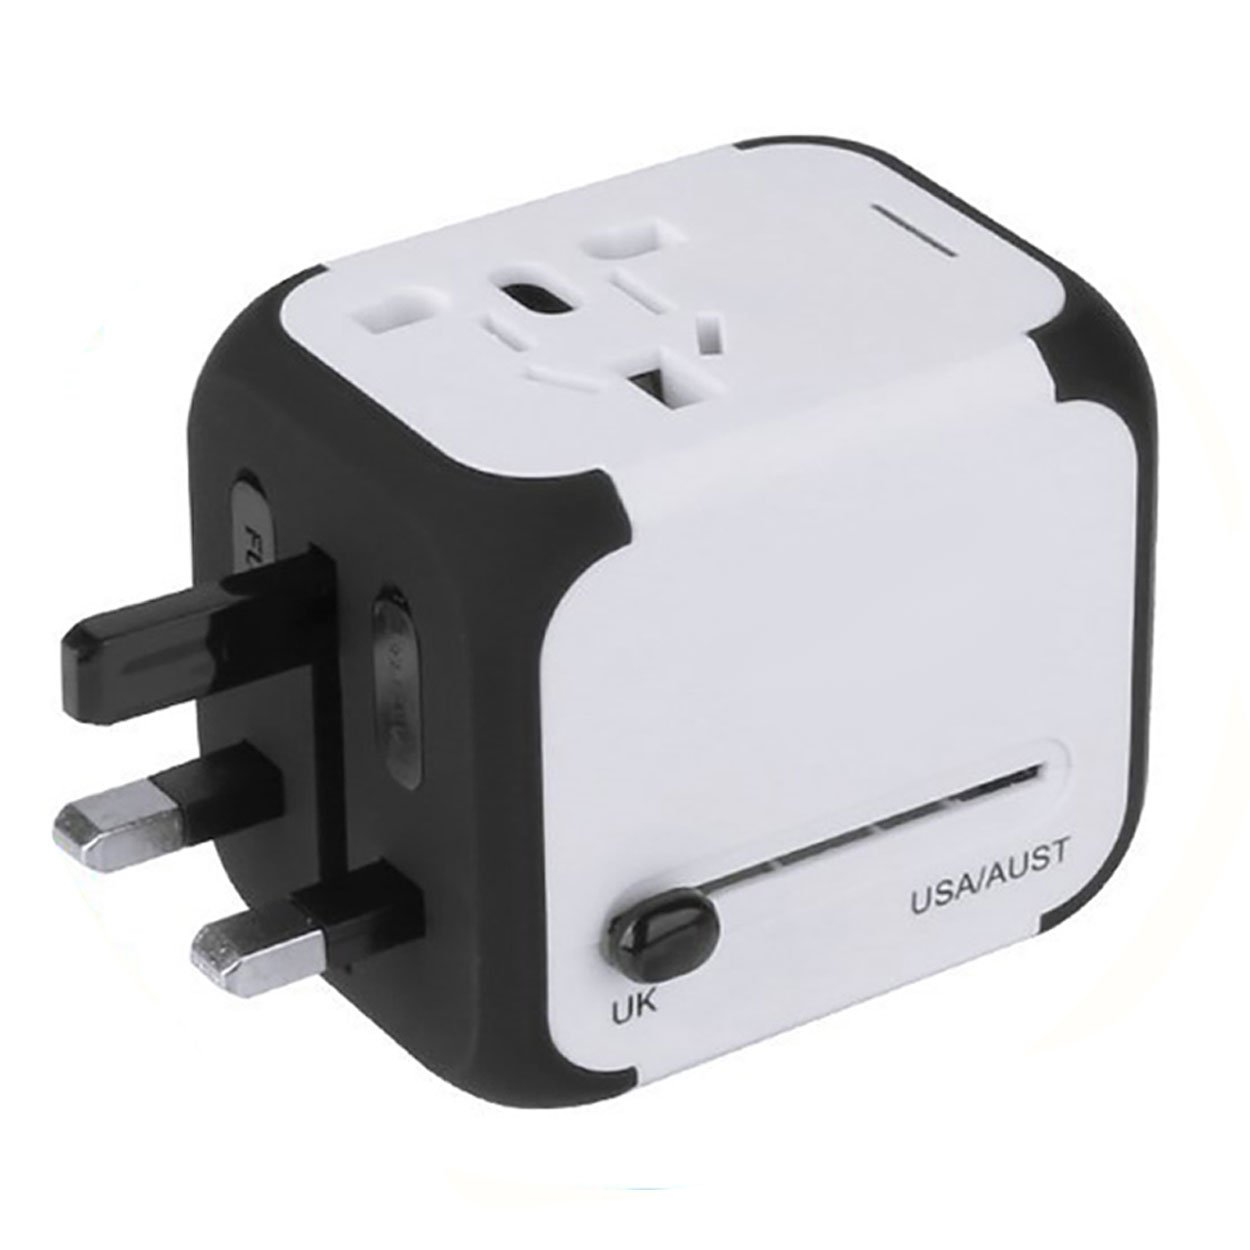 Yardsky Universal Travel Adapter Worldwide All in One Small Portable International Wall Charger with 2 USB Ports Outlet and Plug for USA EU UK AUS (White)